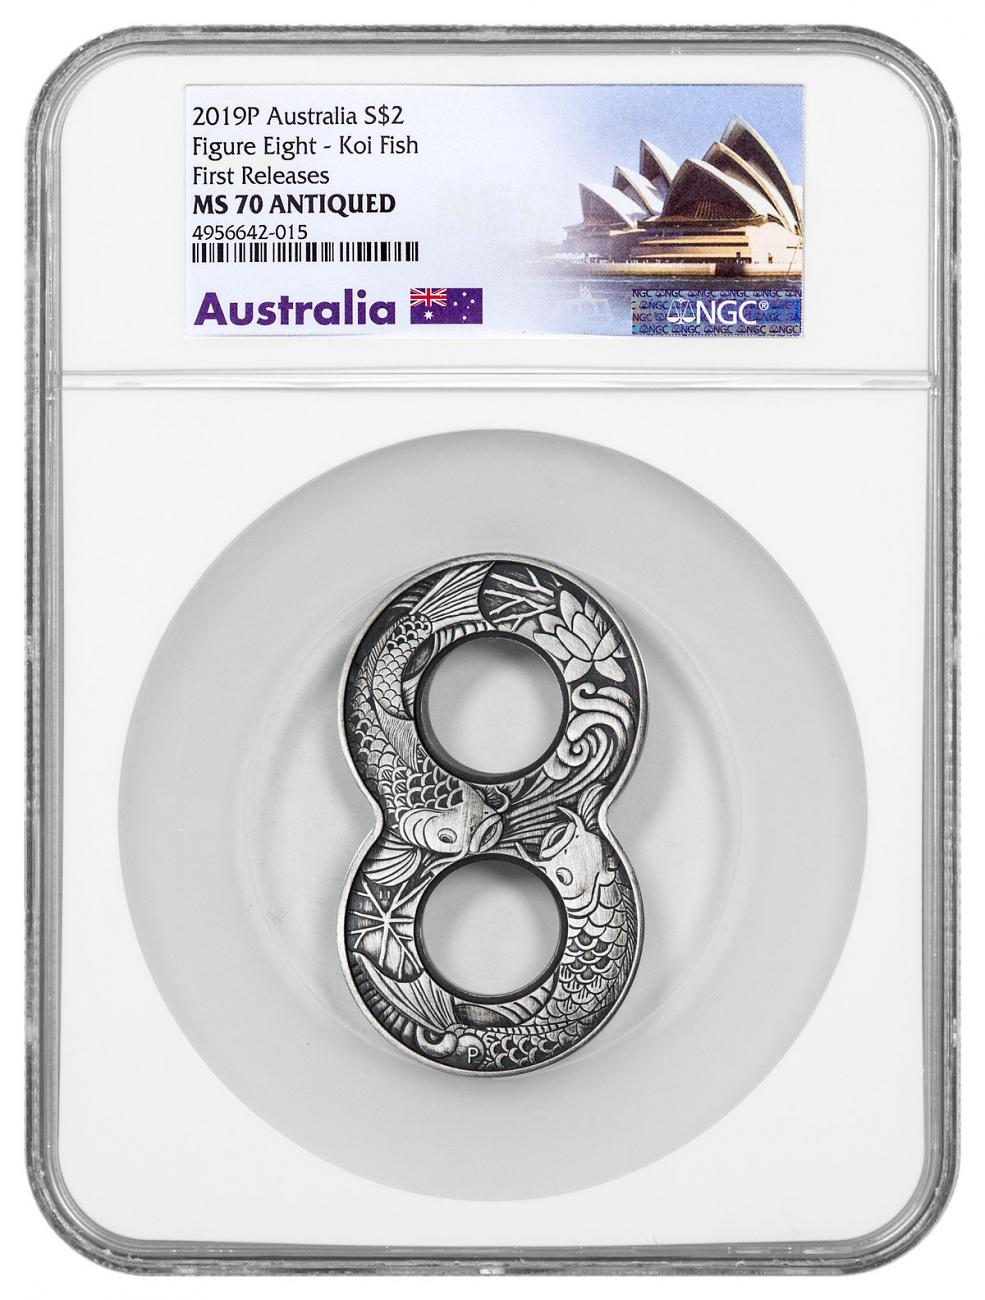 2019-P Australia Figure Eight Koi Fish Figure Eight Shaped 2 oz Silver Antiqued $2 Coin NGC MS70 FR Australia Opera House Label